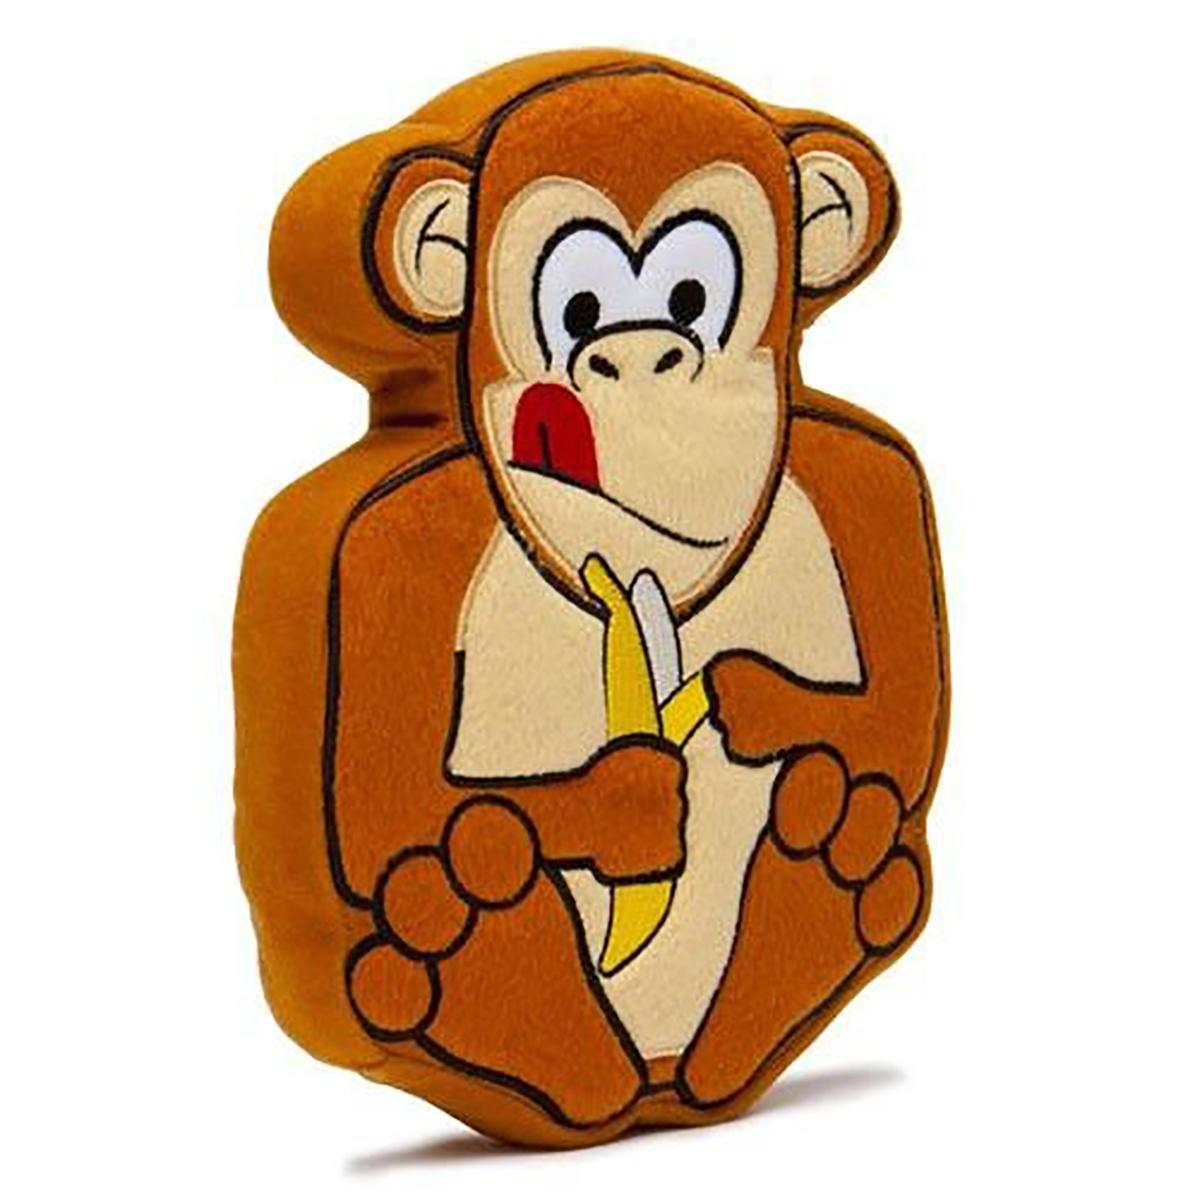 PrideBites Monkey Dog Toy